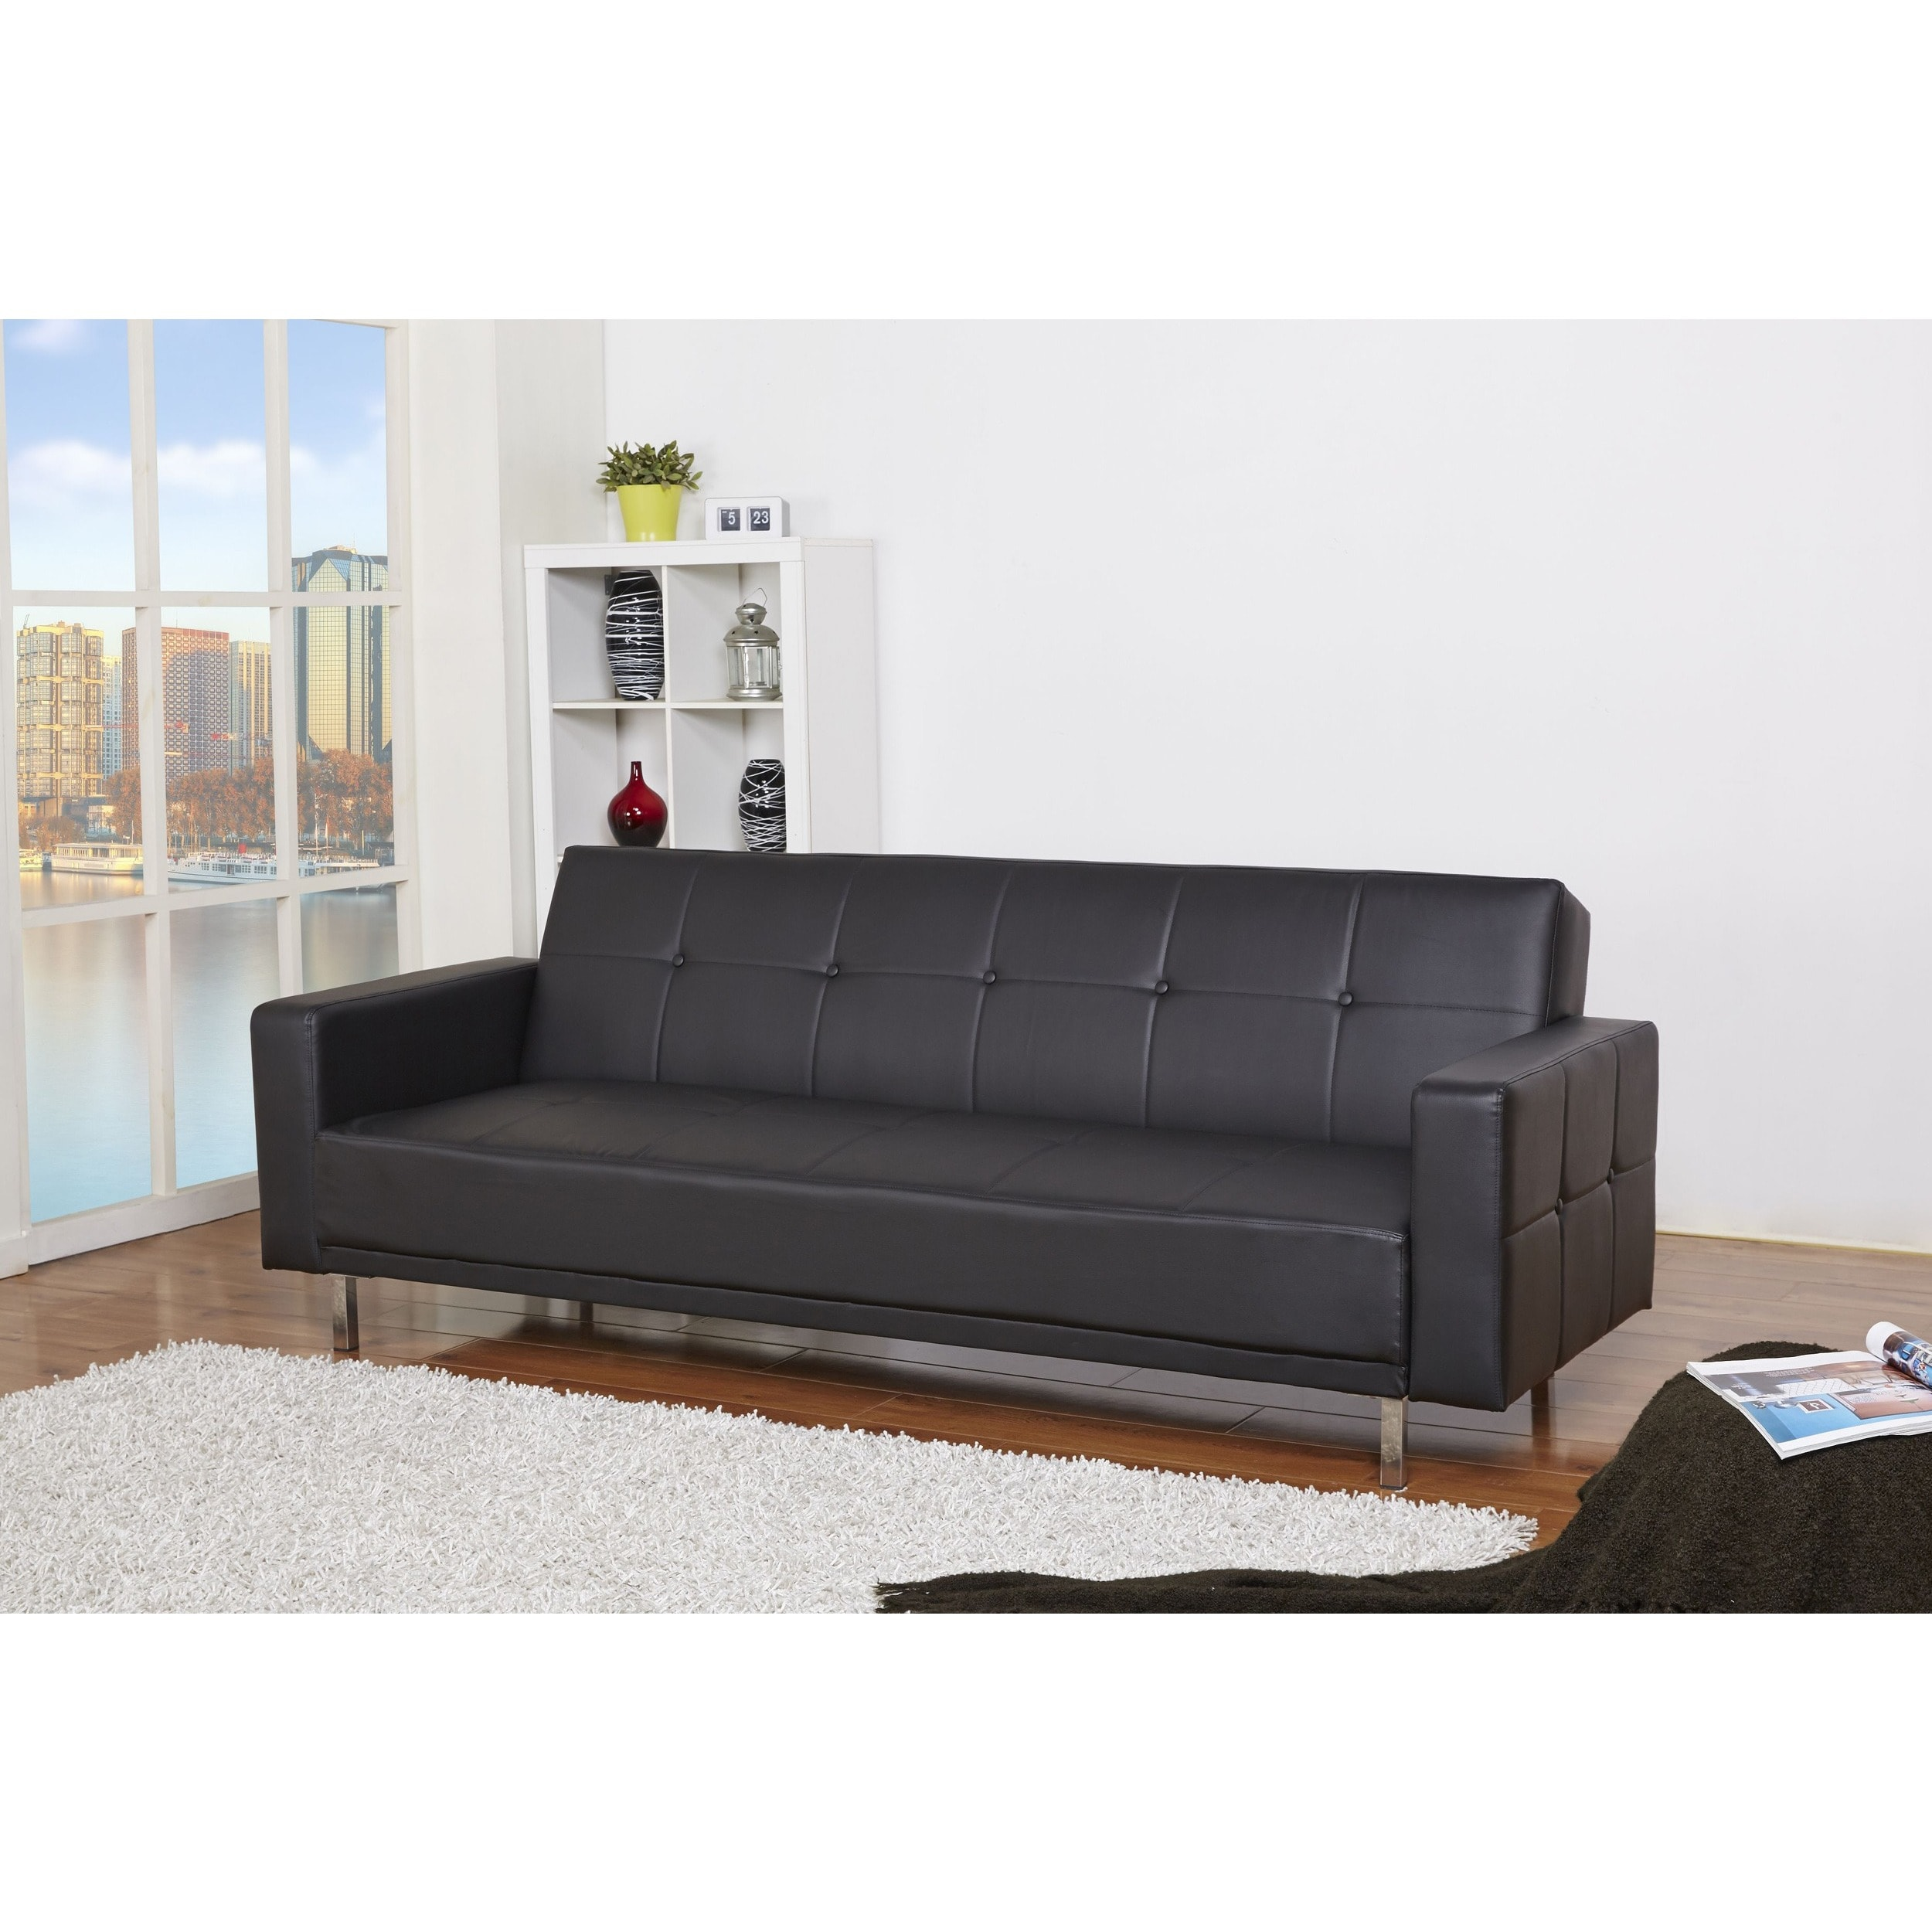 Gold Sparrow Cleveland Black Convertible Sofa Bed